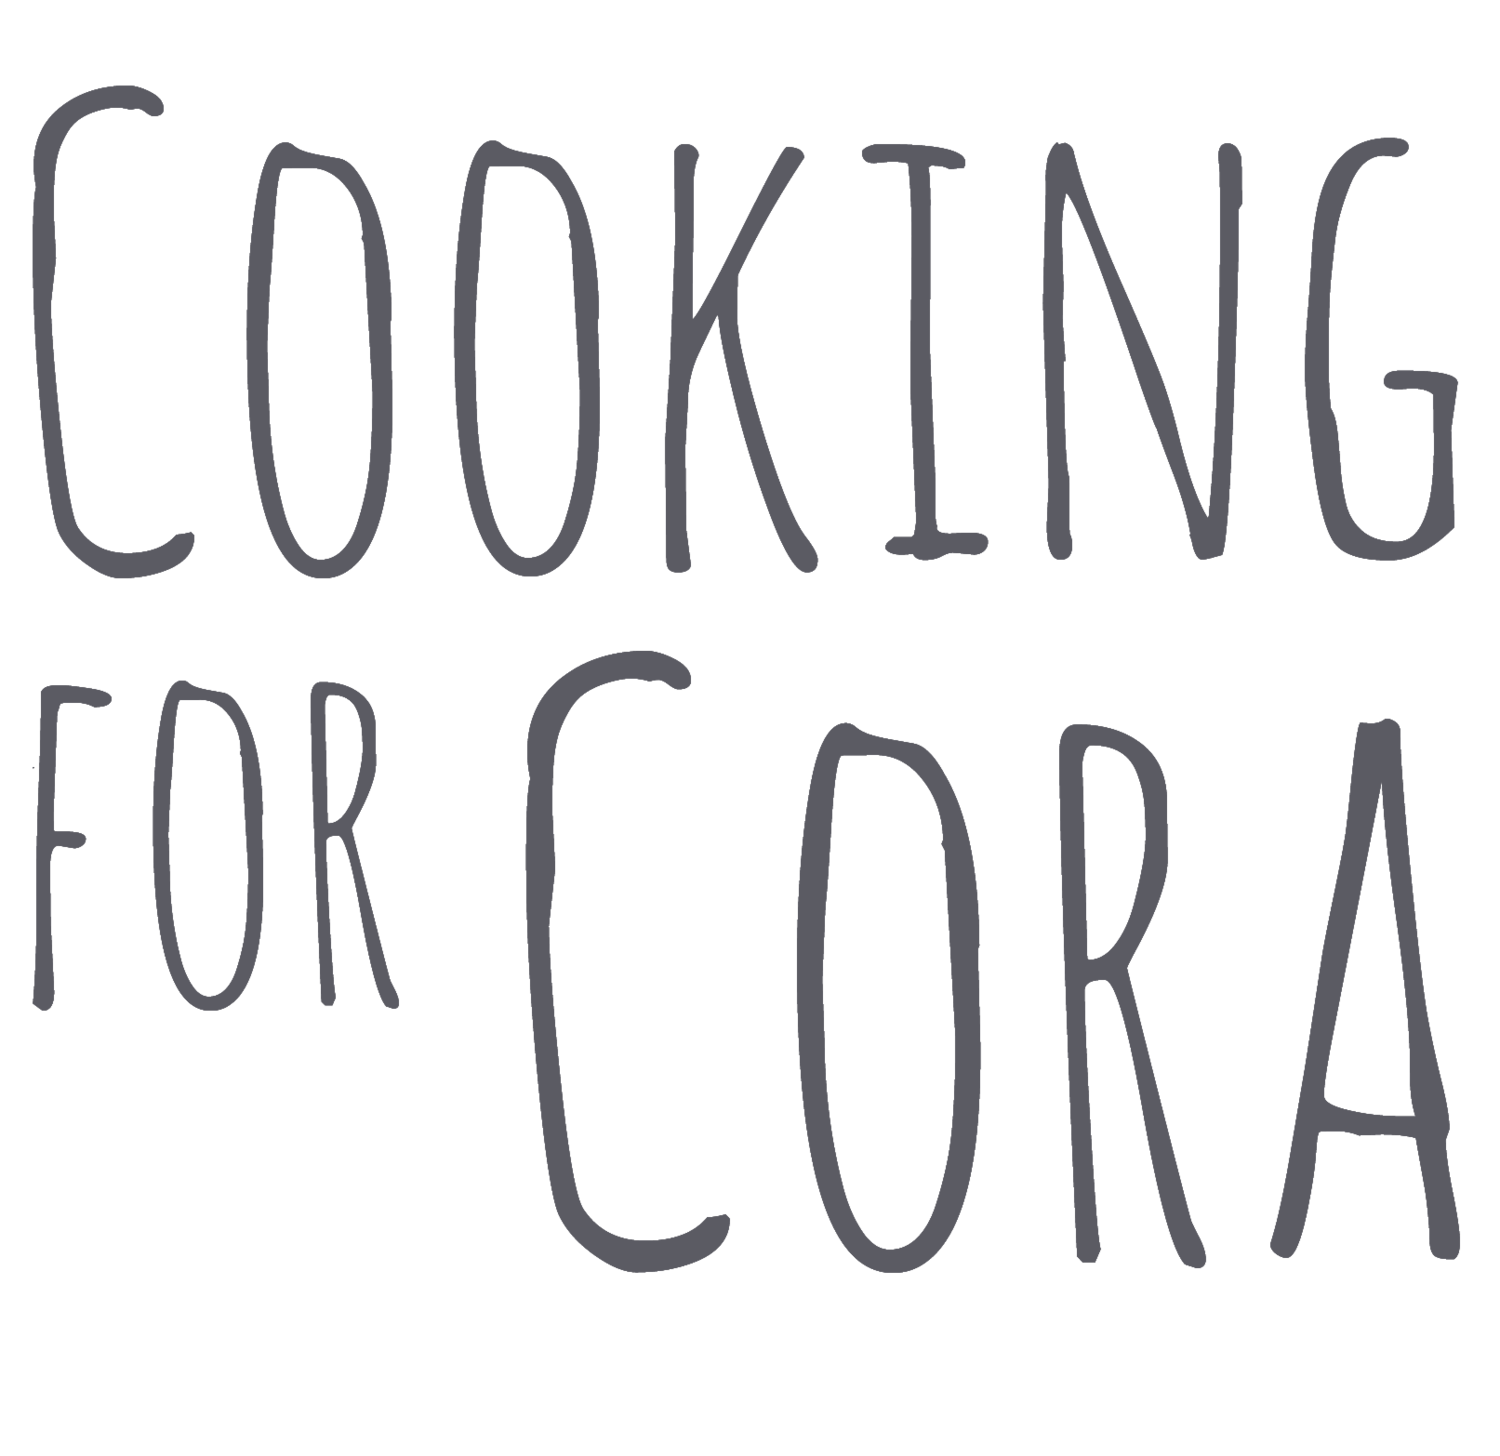 Cooking for Cora